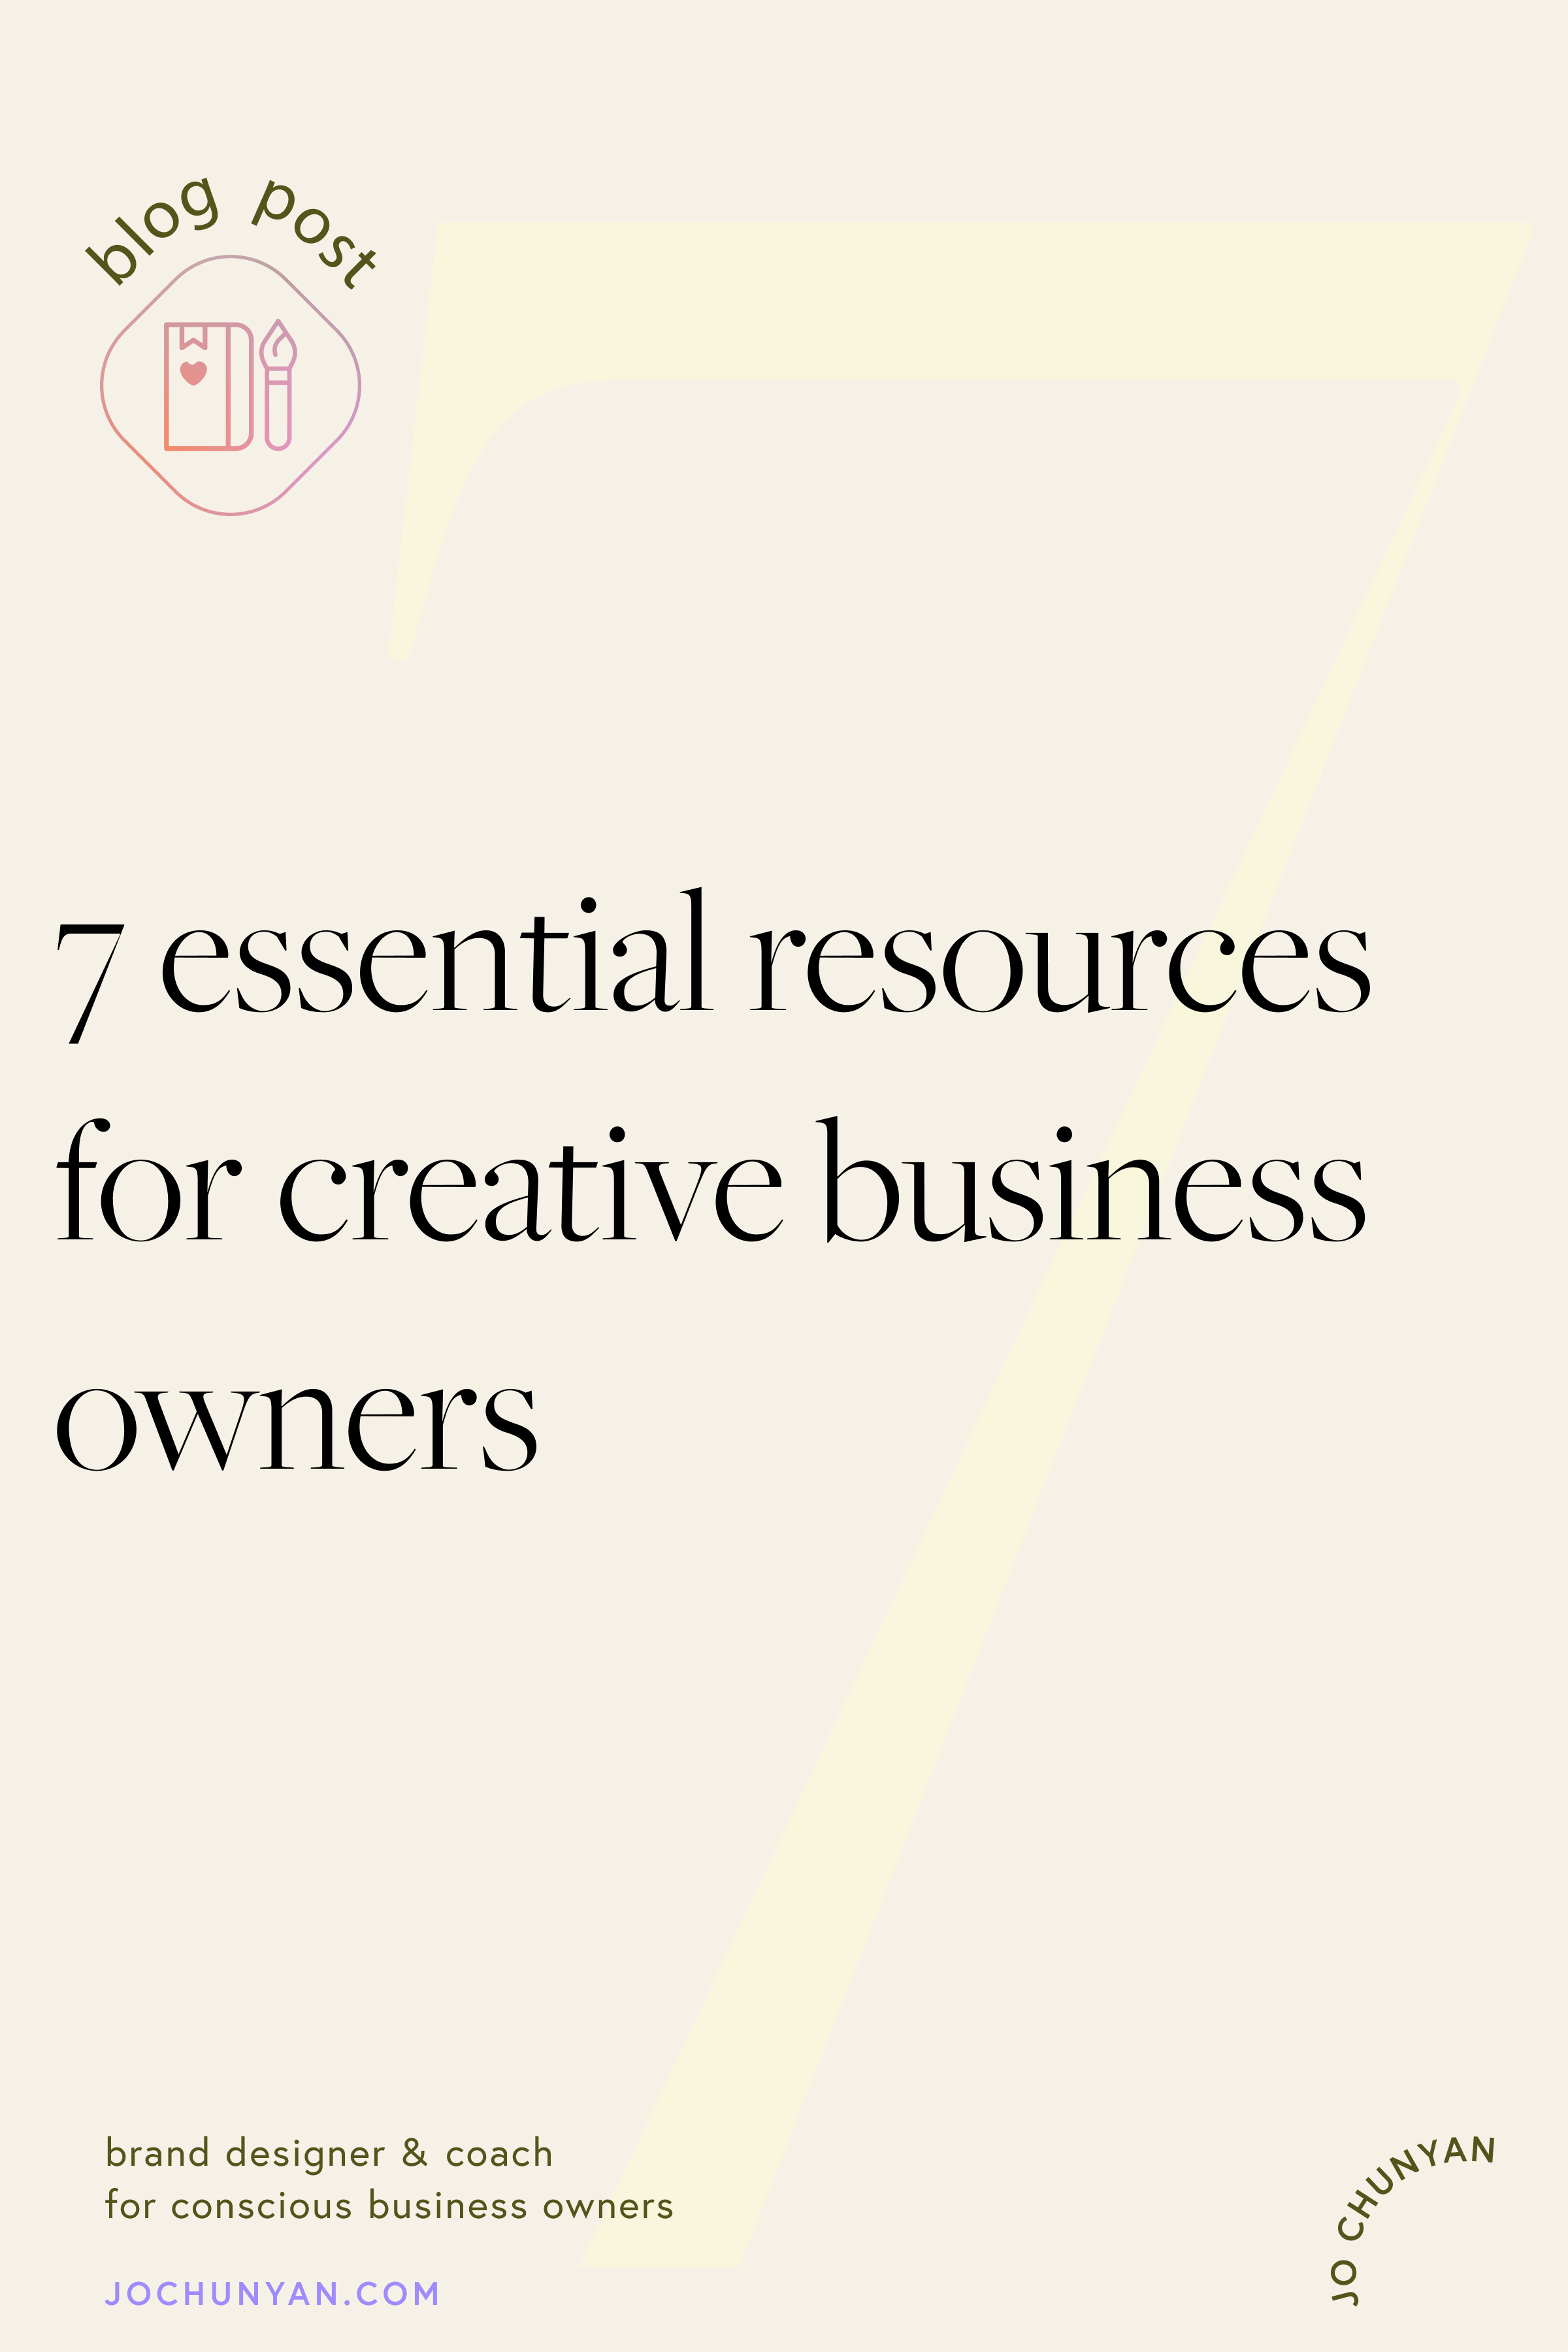 7 Essential Resources for Creative Business Owners